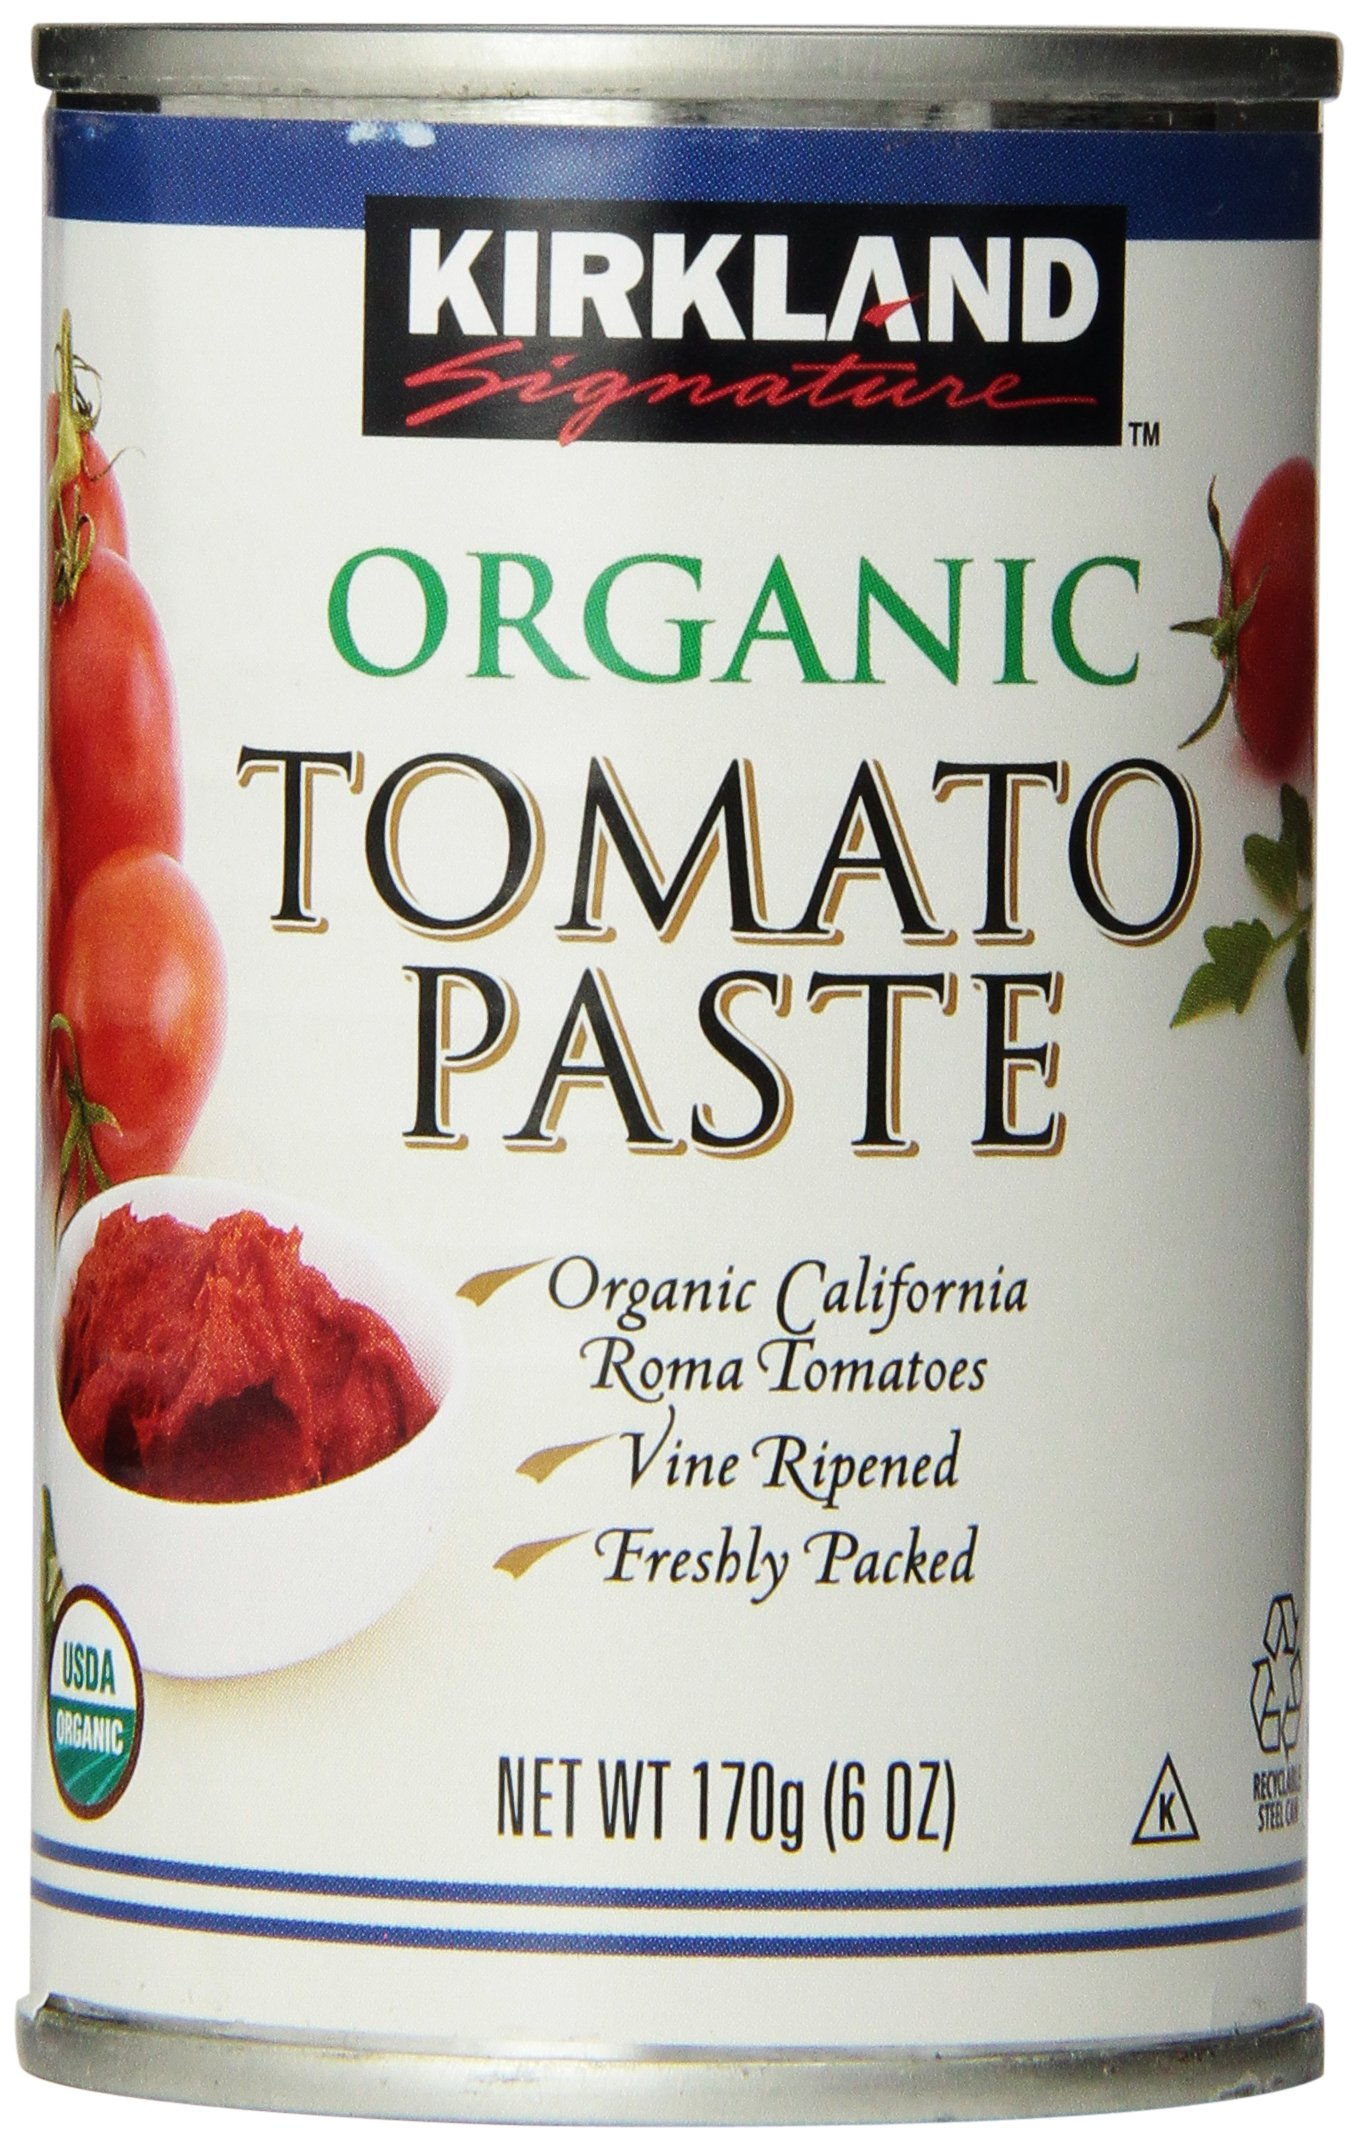 Kirkland Signature Organic Tomato Paste, 6oz cans, 12-Count